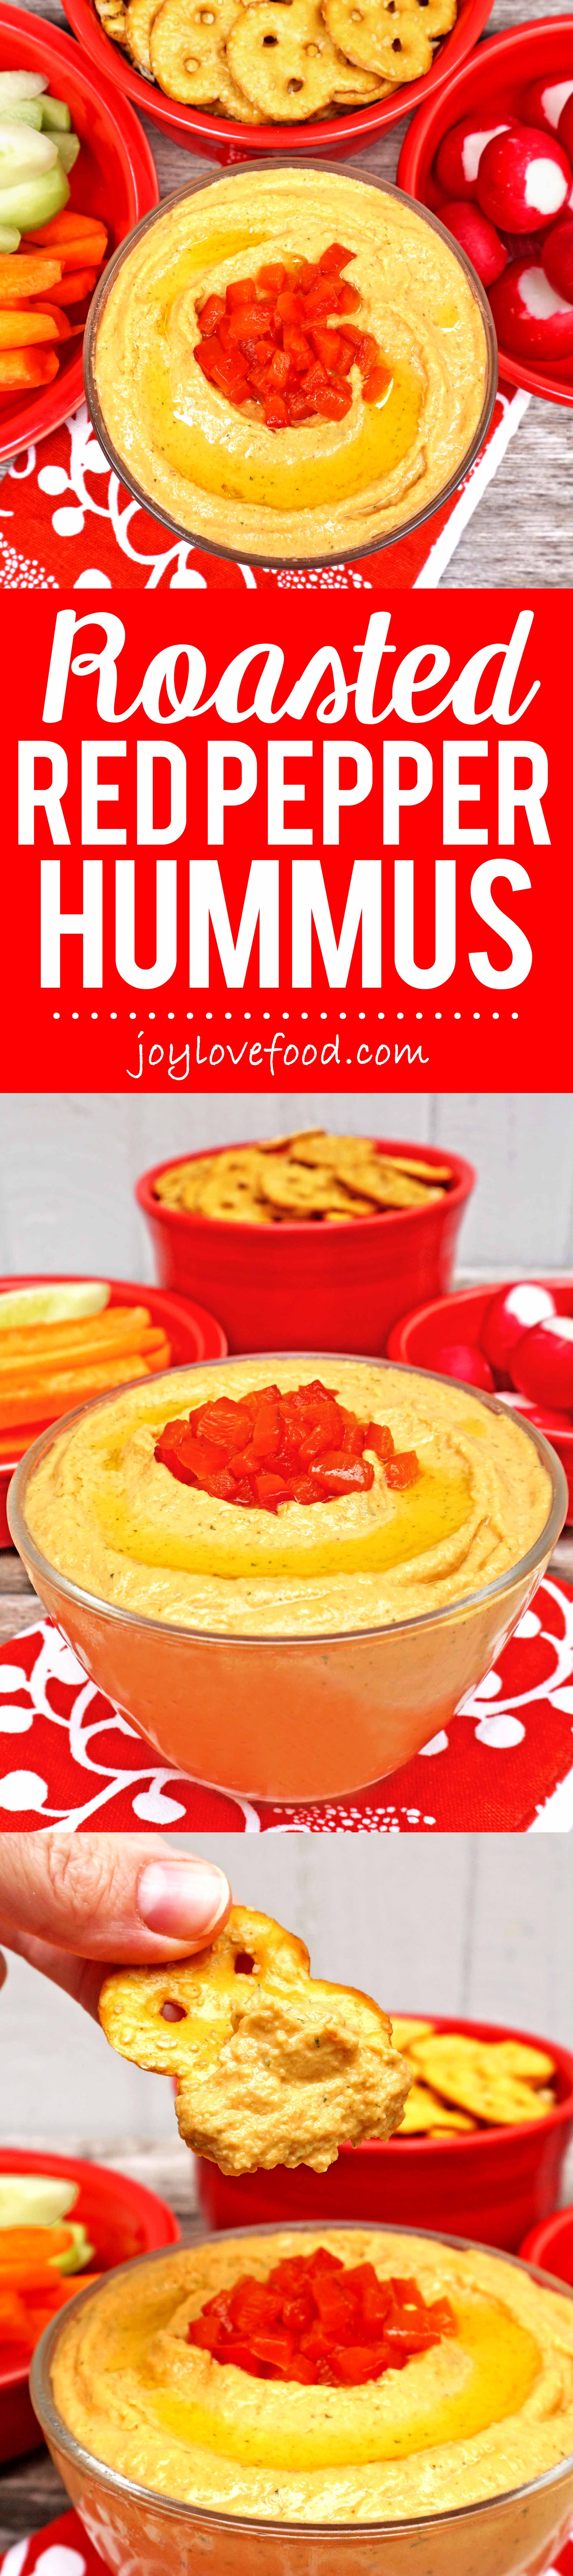 Roasted red pepper hummus joy love food for Roasted red bell pepper hummus